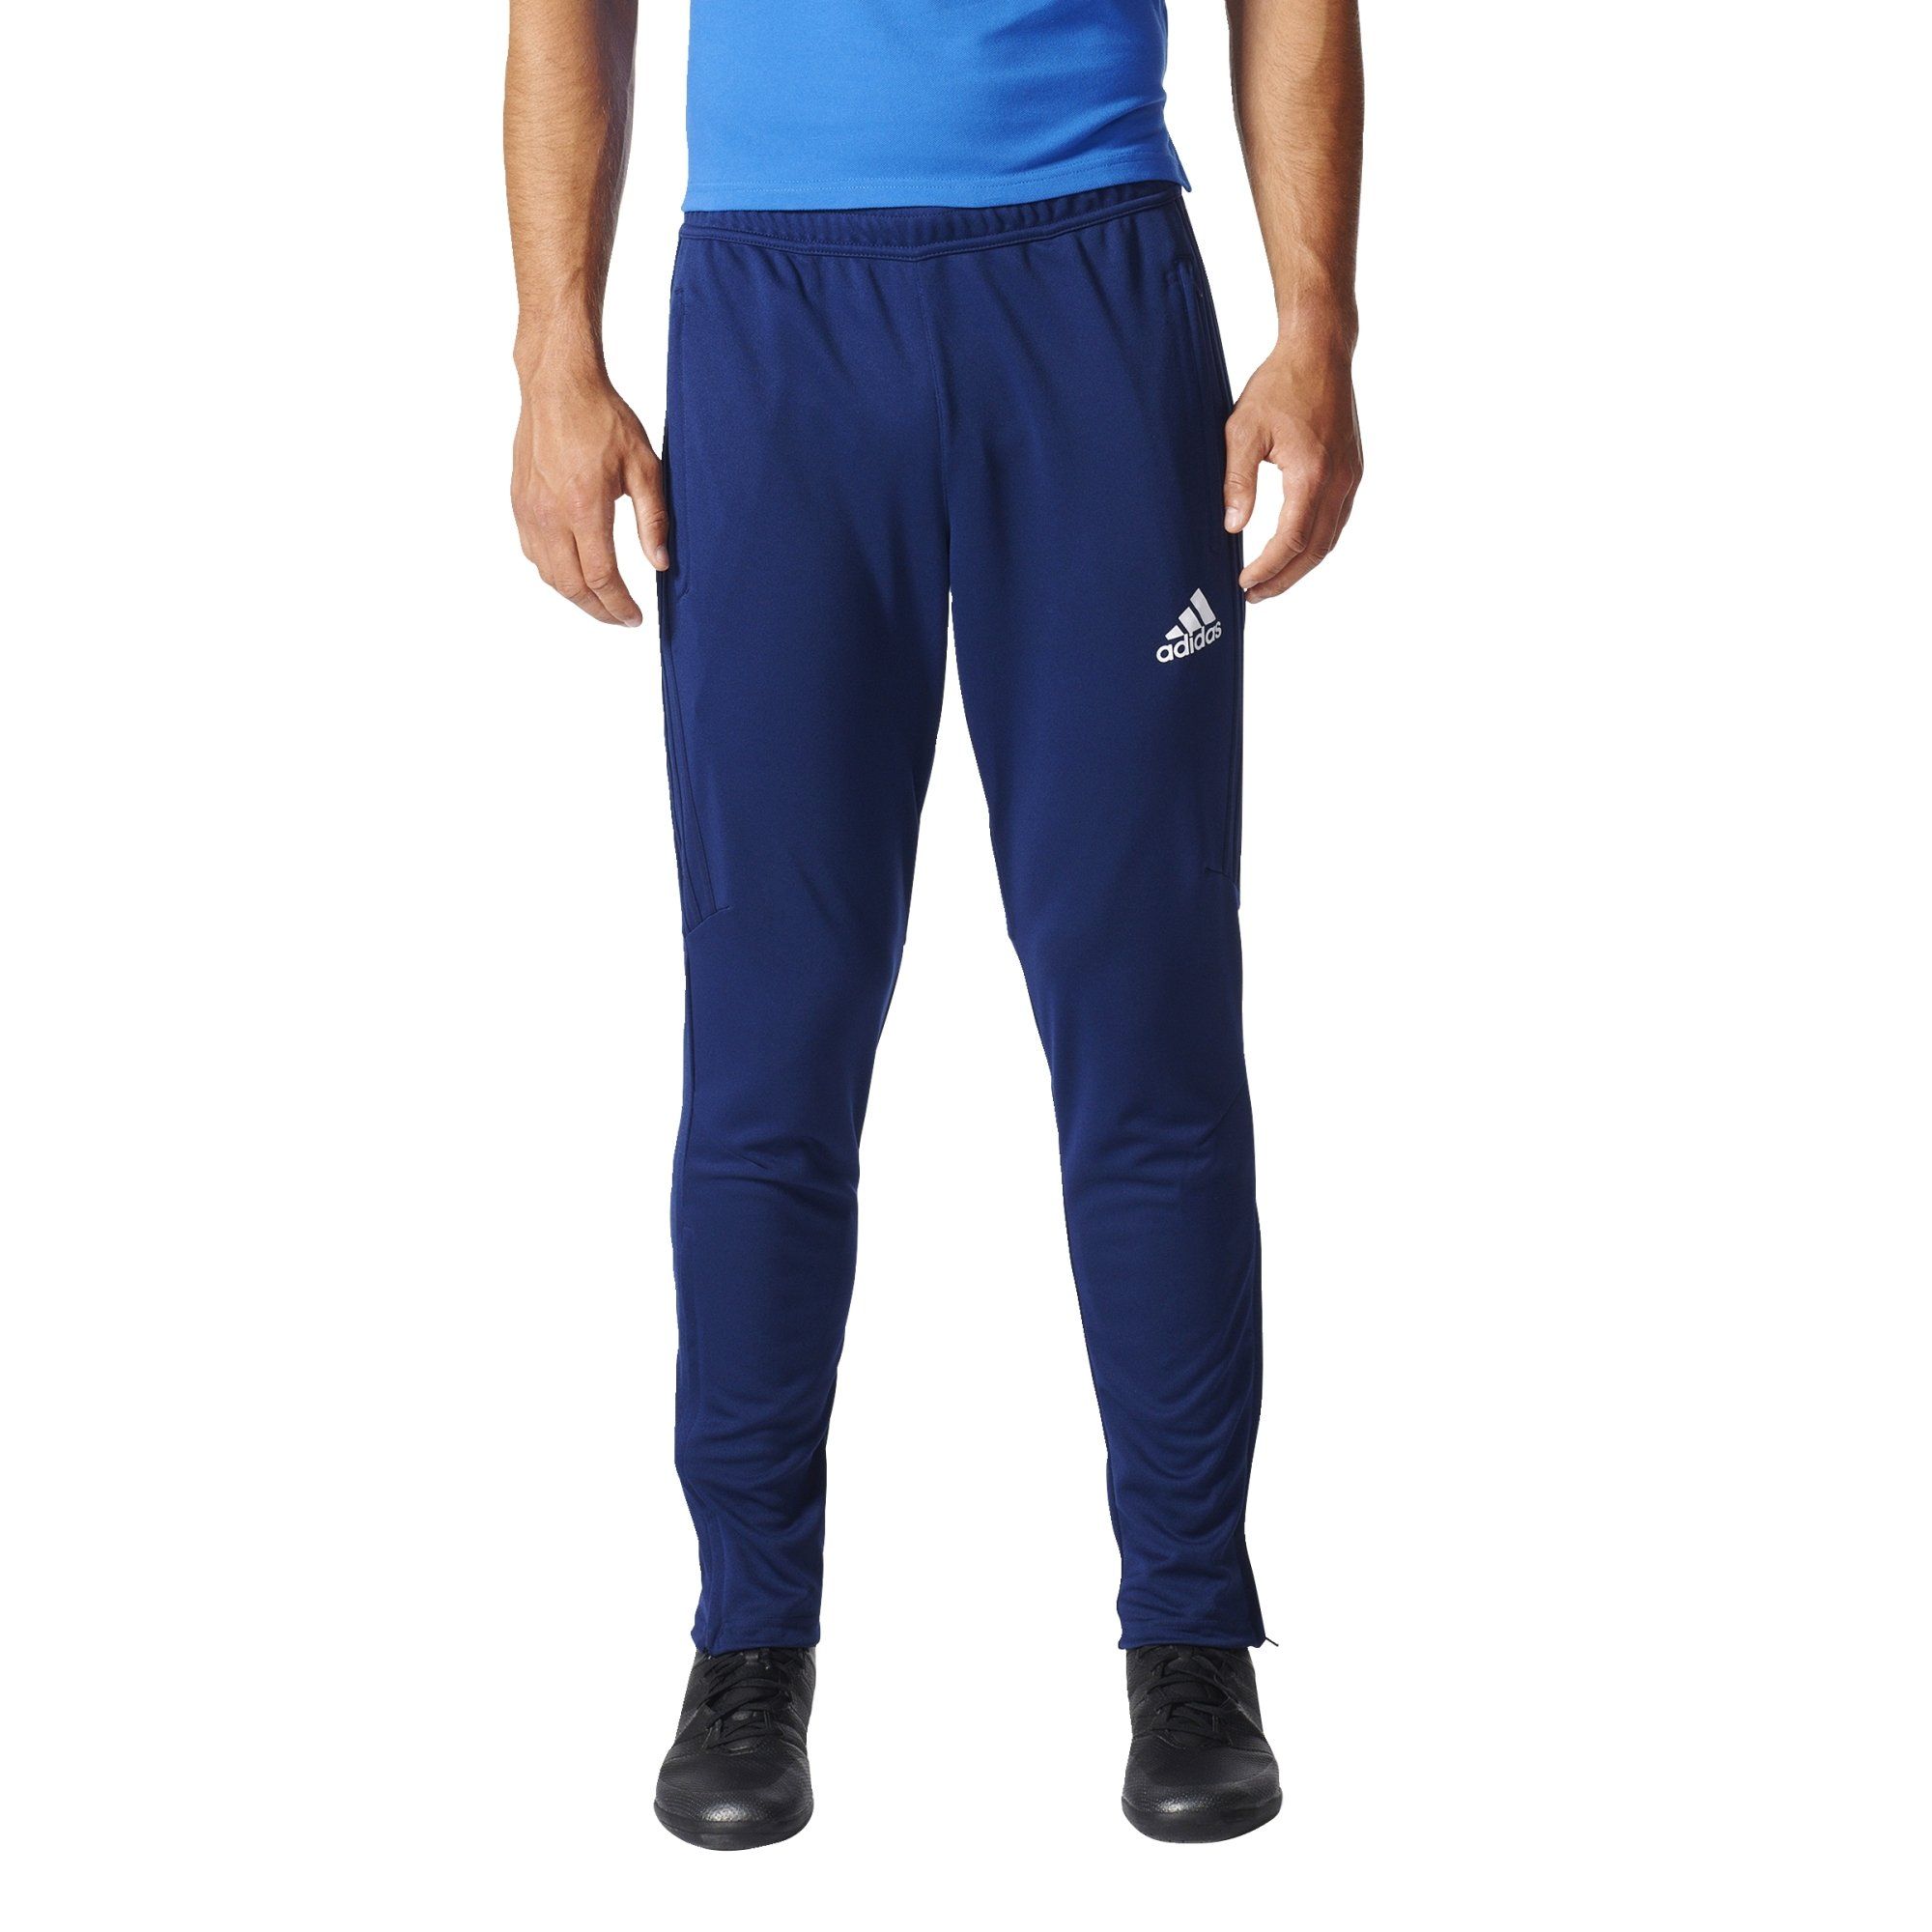 adidas Men's Soccer Tiro 17 Pants, 3X-Large, Dark Blue/White by adidas